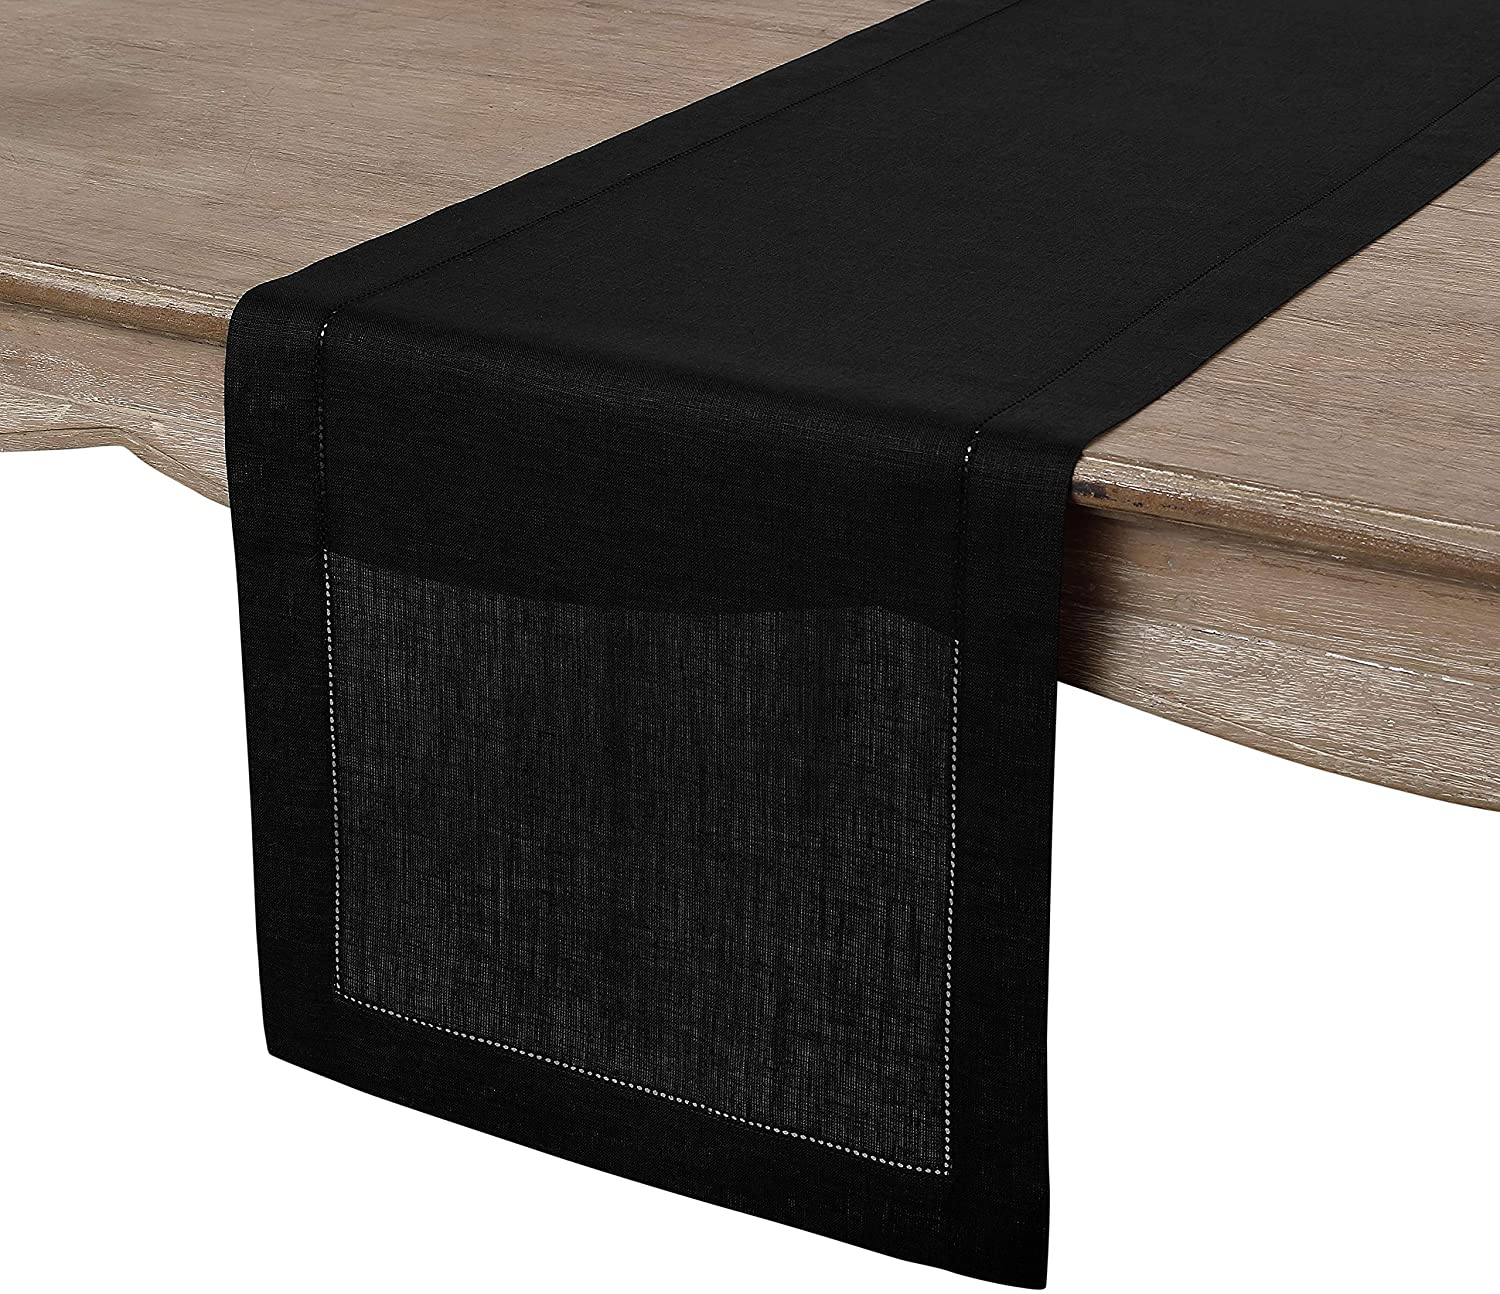 Solino Home 100% Pure Linen Hemstitch Table Runner - 14 x 60 Inch, Handcrafted from European Flax, Machine Washable Classic Hemstitch - Black